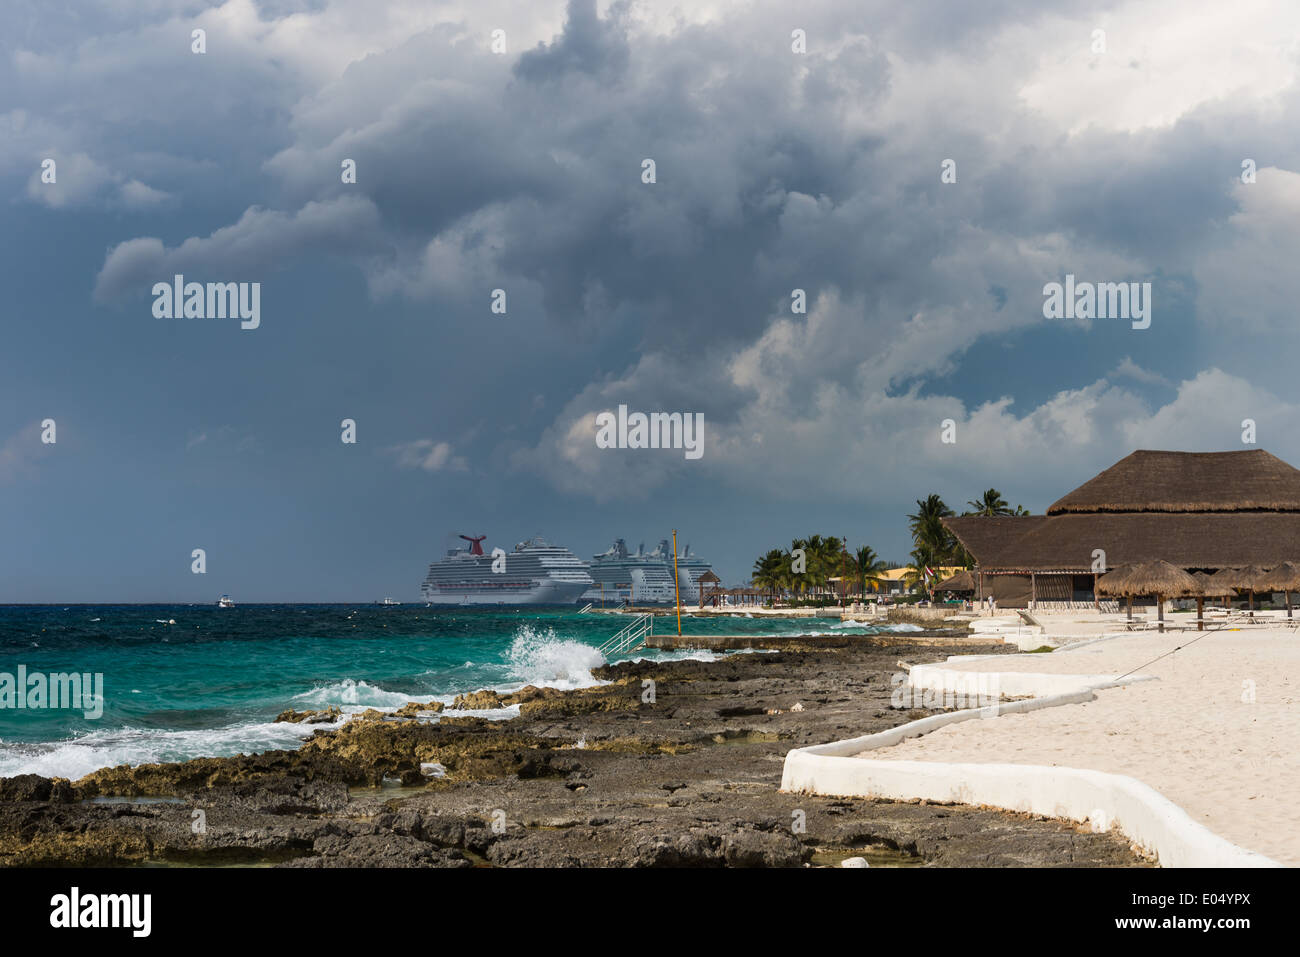 Dark storm clouds gather over a beach resort. Cozumel, Mexico. Stock Photo